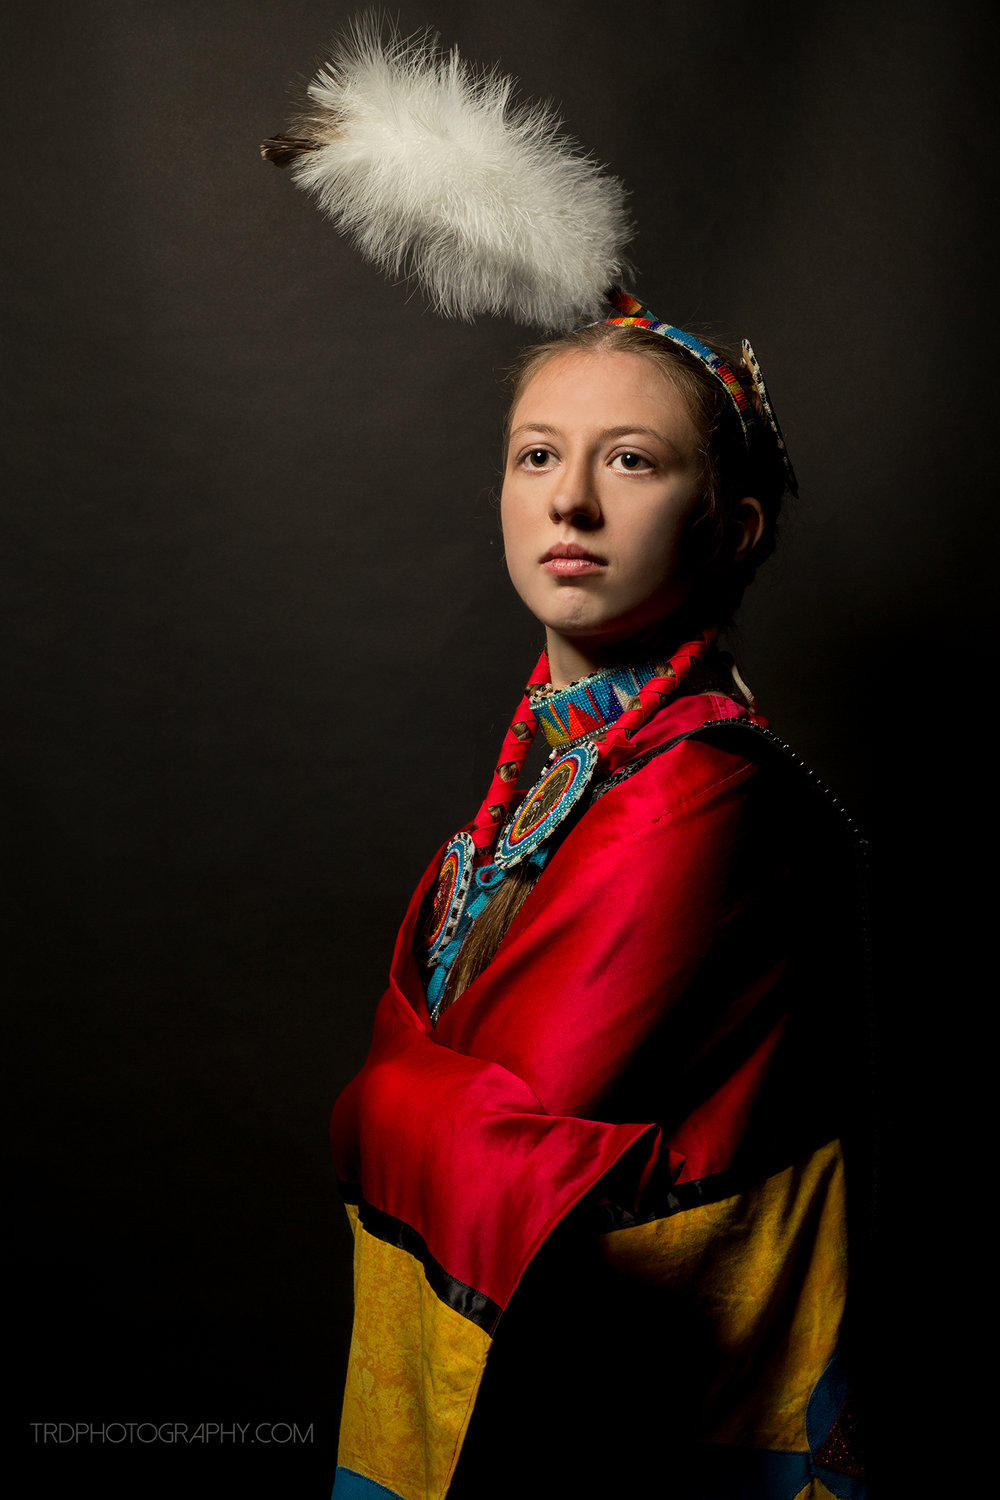 Native American Portrait Series - Teah Plumlee - TRD Photography